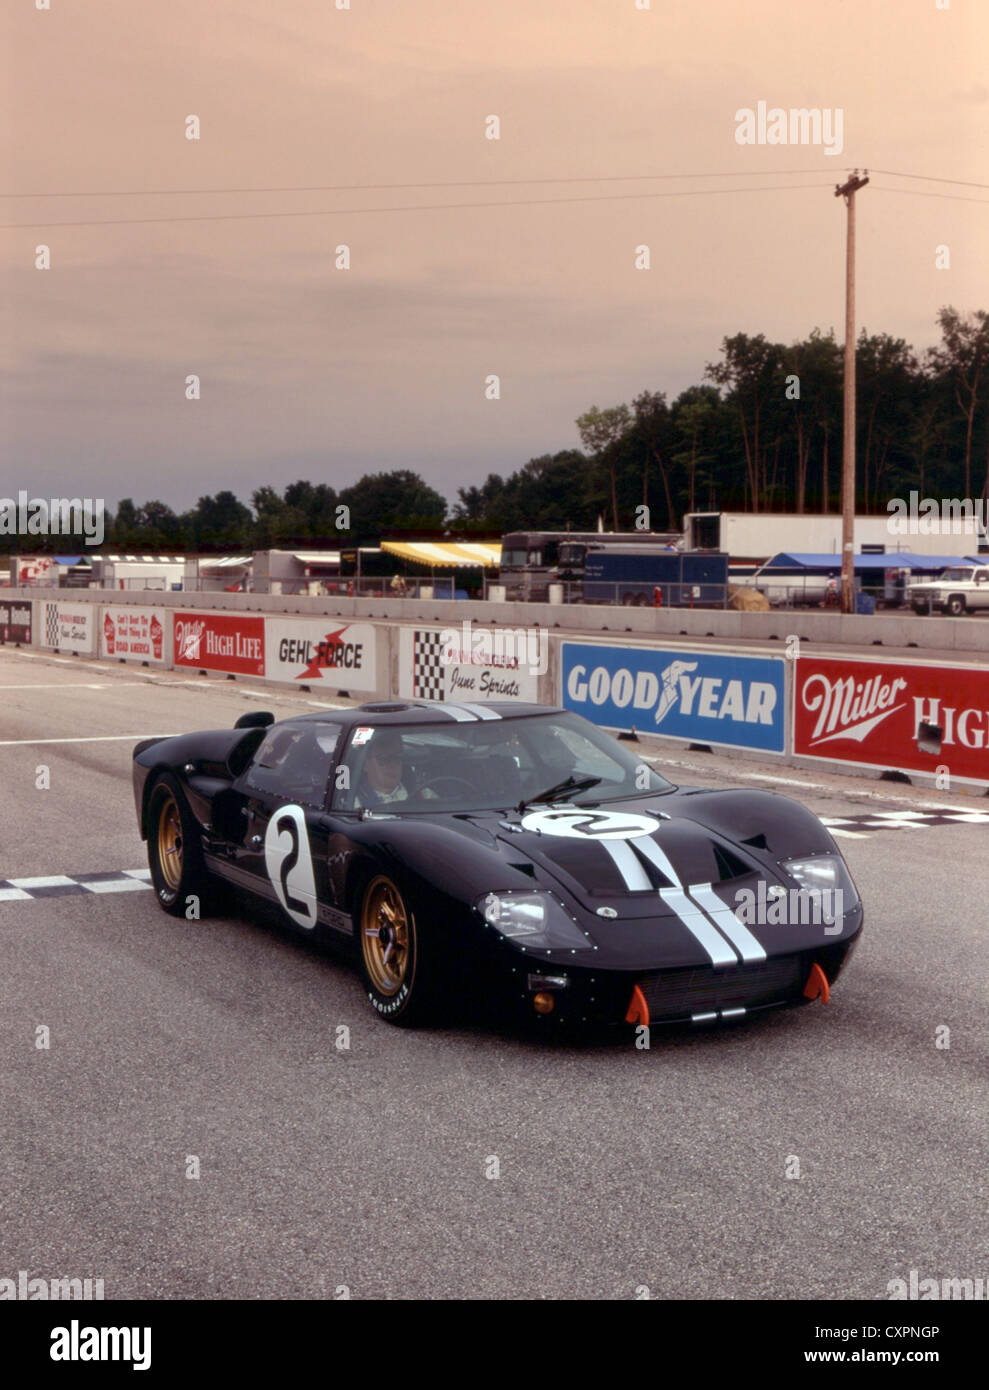 Ford GT40 MKII at Road America Elkhart lake race track.Winner 1966 Le Mans 24 hour race - Stock Image